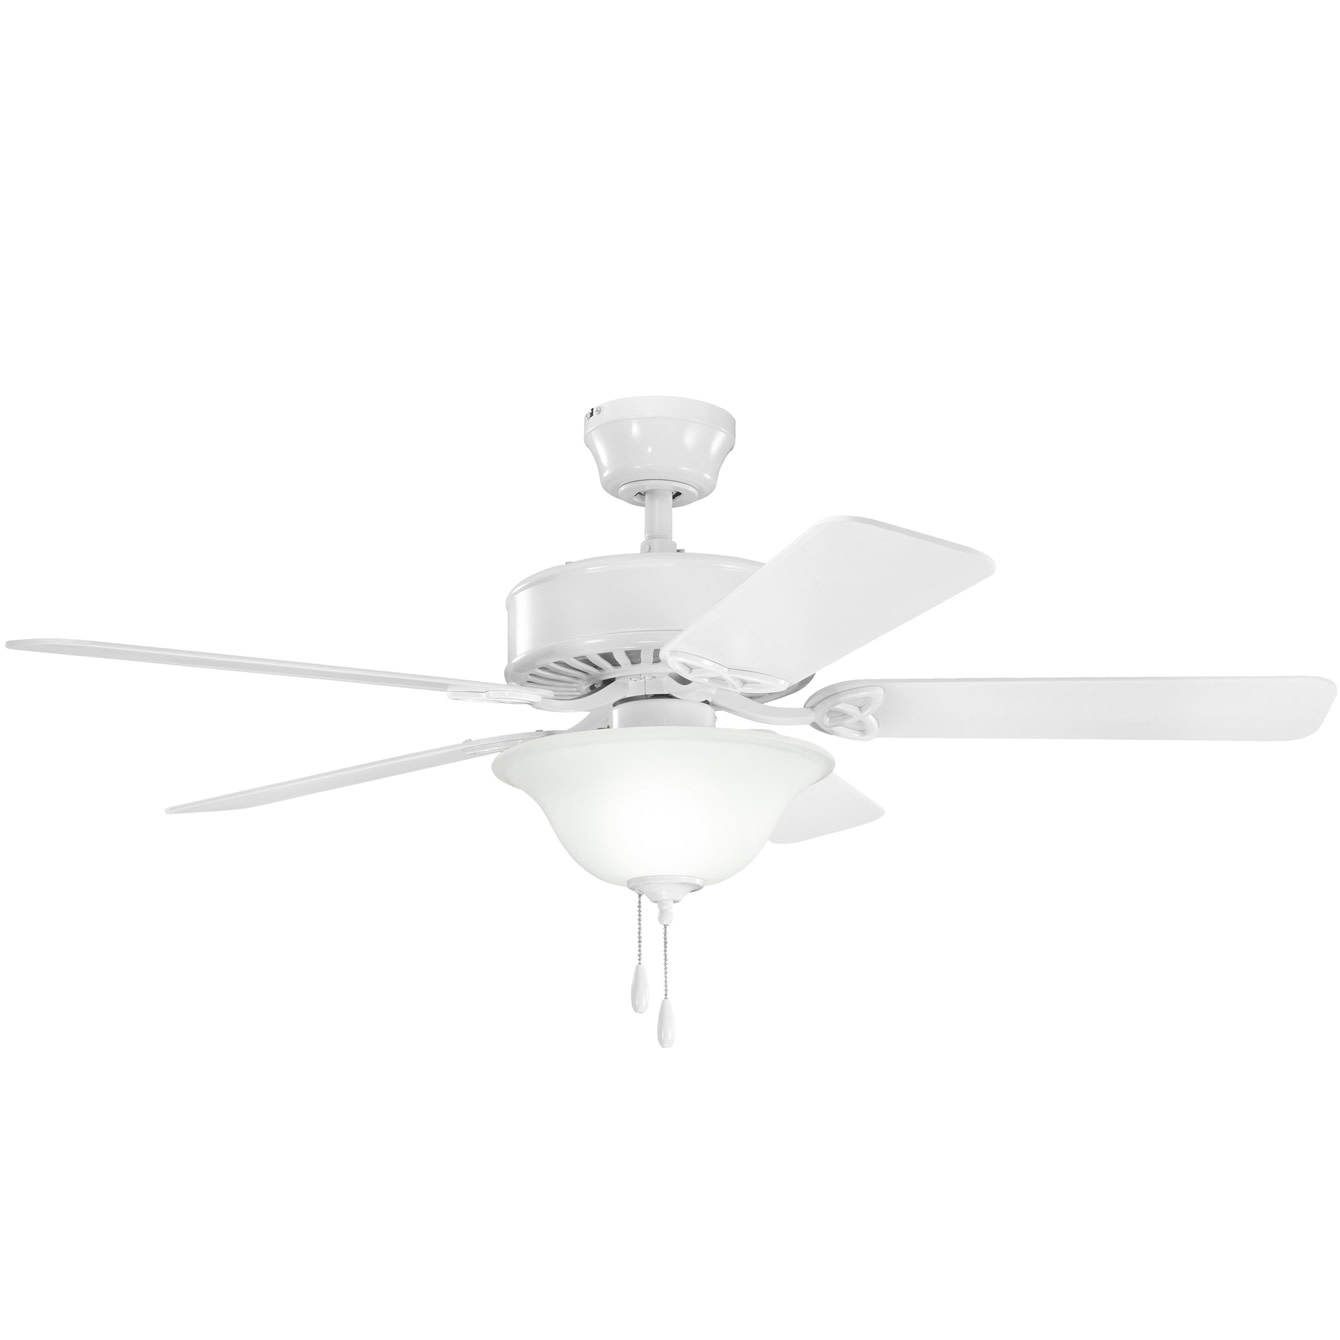 hight resolution of details about kichler 330110 50 indoor ceiling fan with blades light kit downrod and pull c